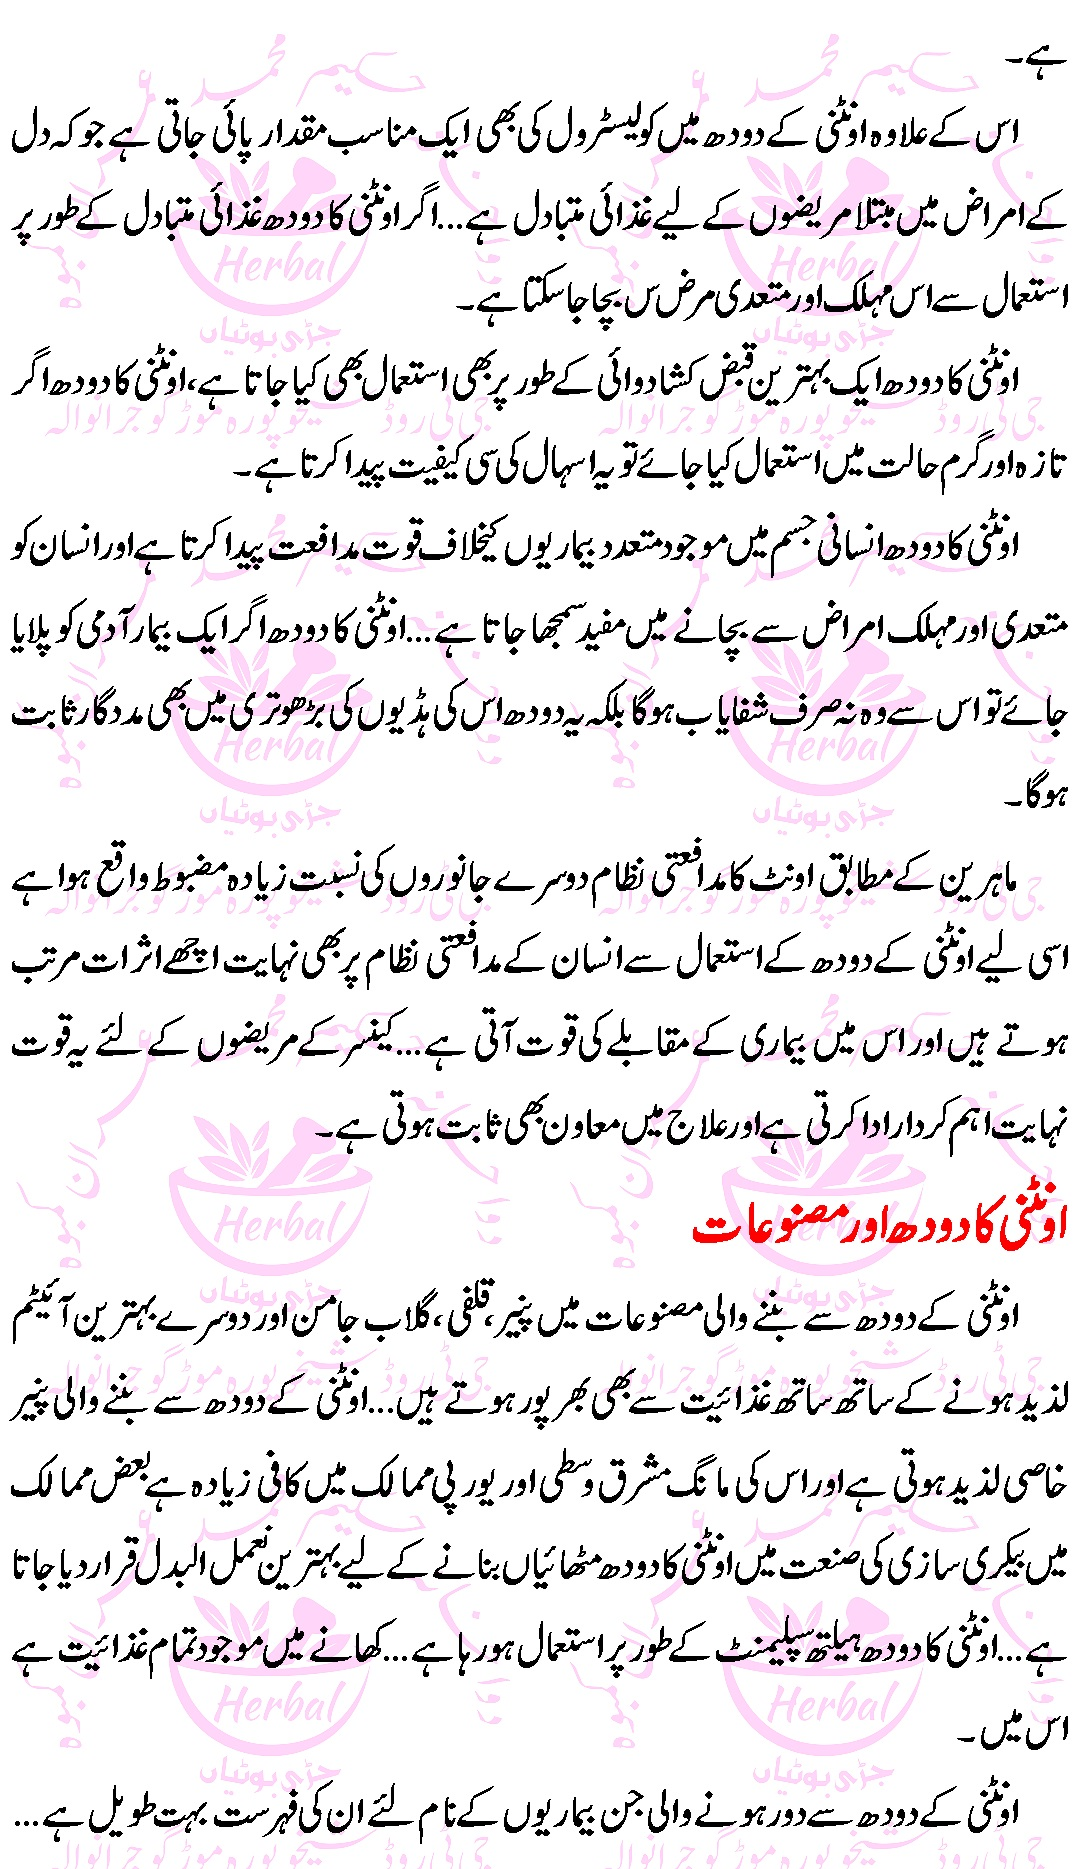 Oontni Kay Doodh kay Faiday (Camel Milk Benefits) in Urdu 3